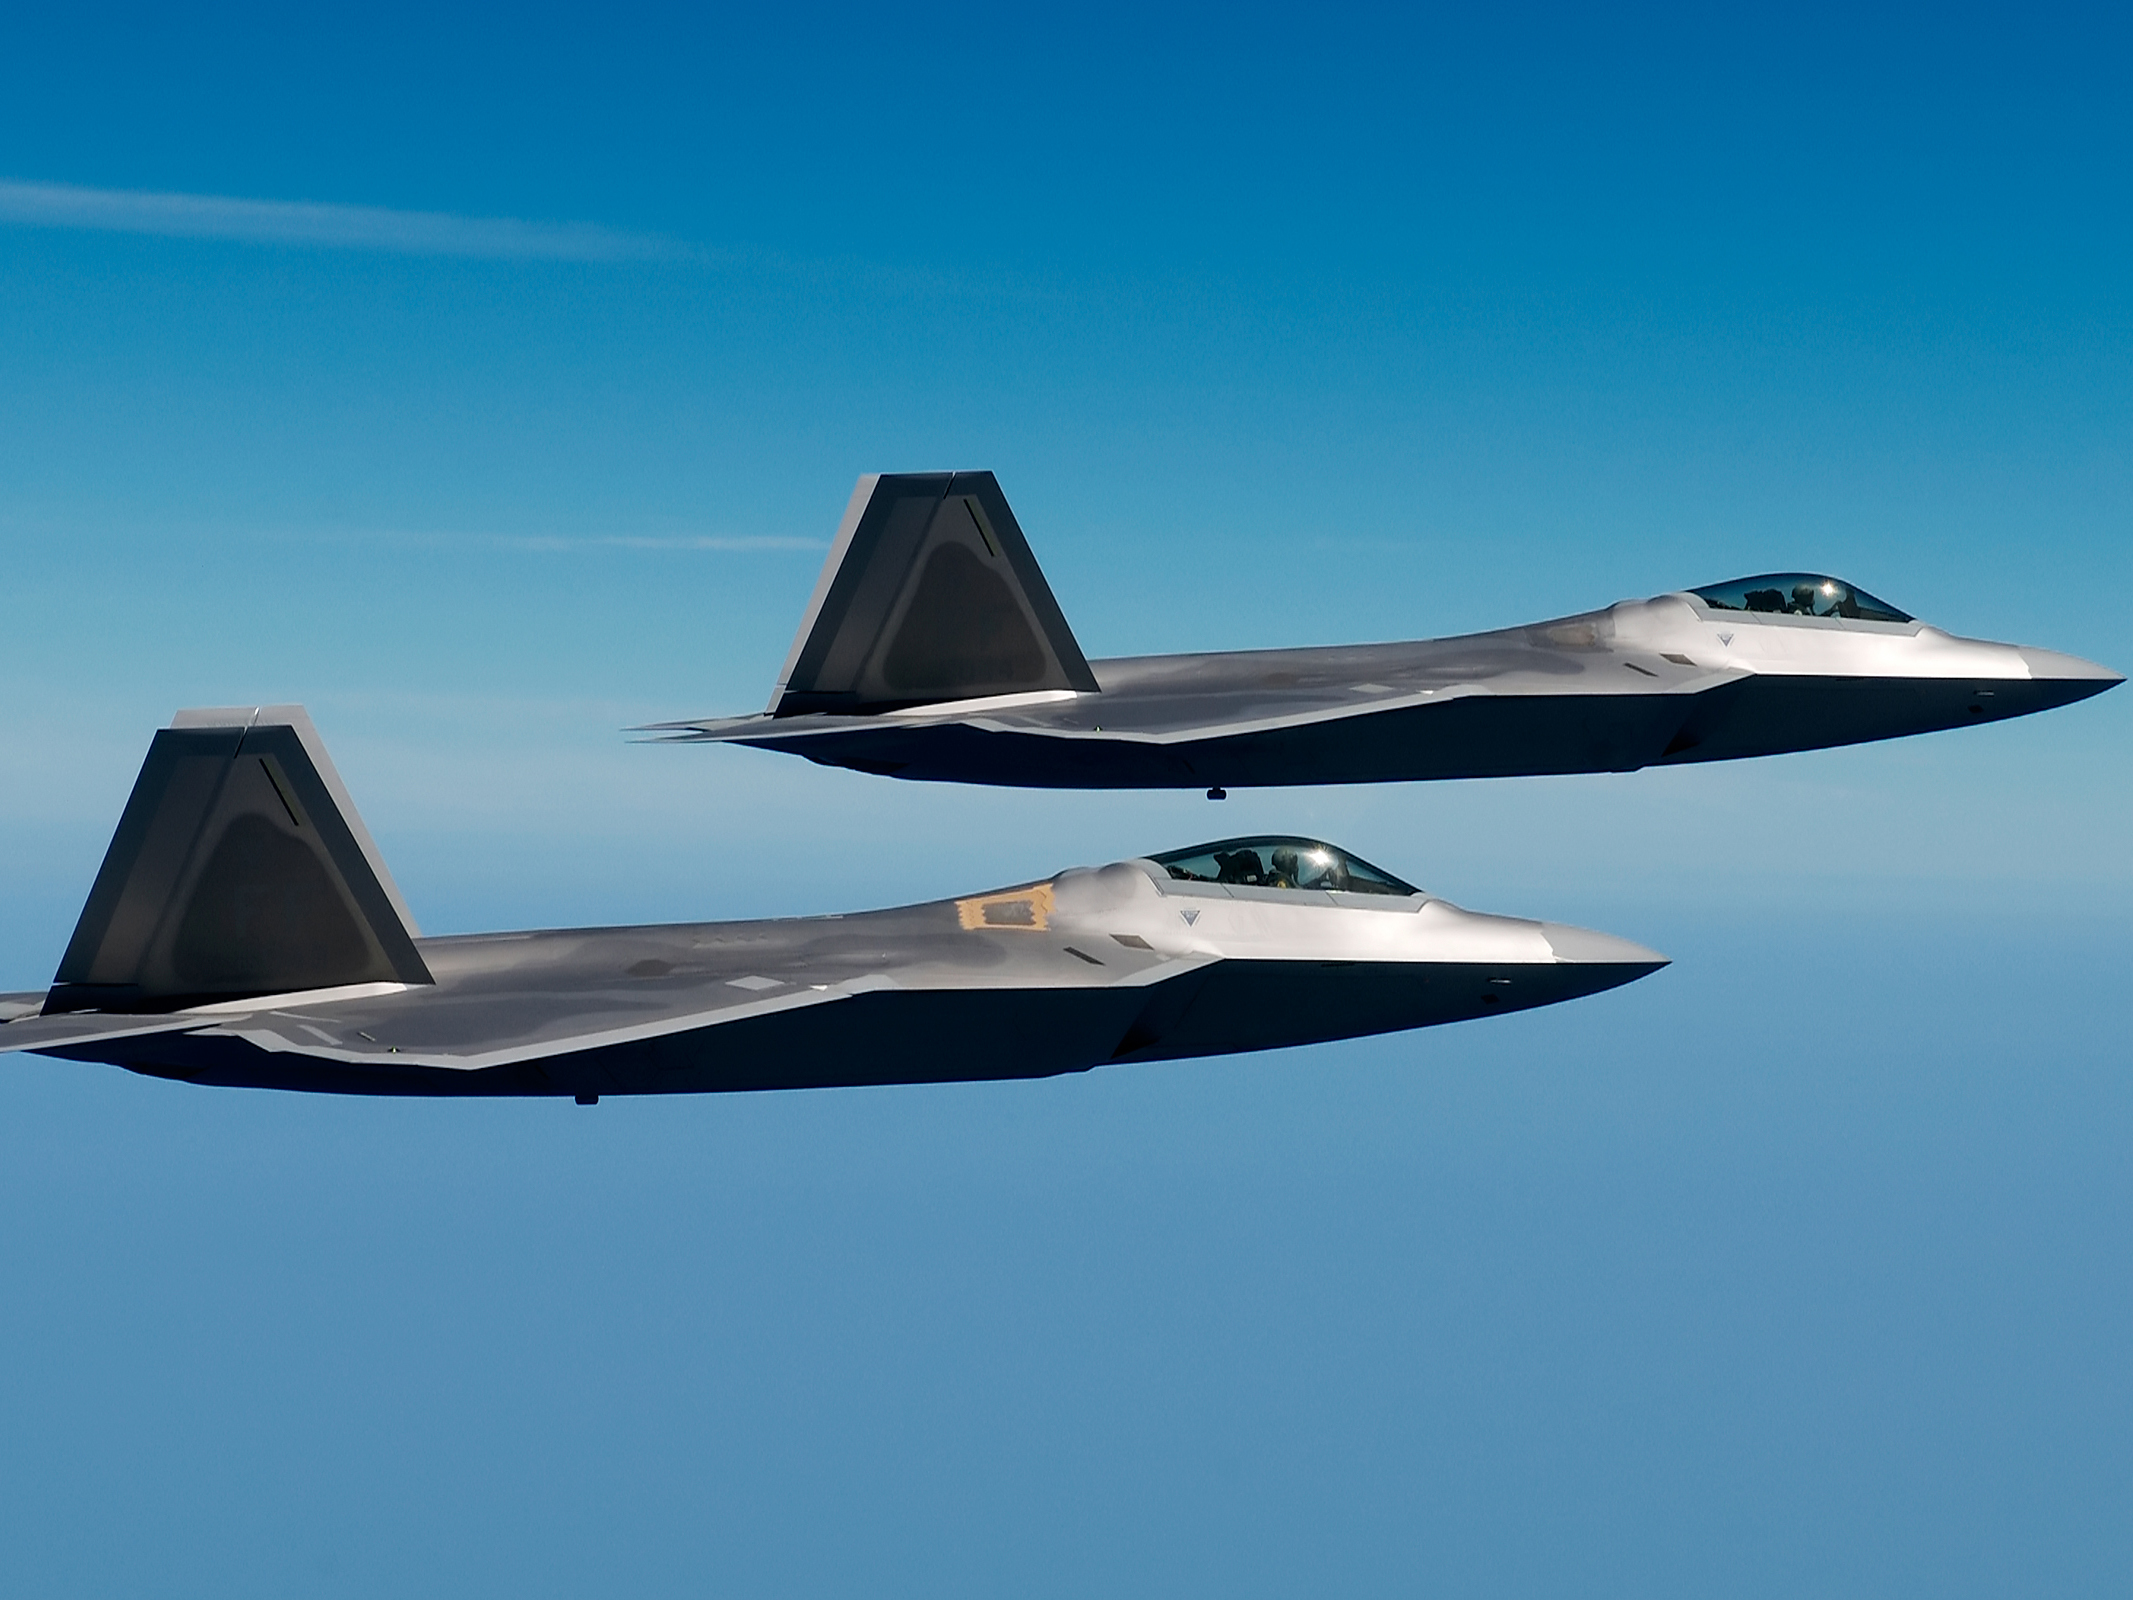 108 Lockheed Martin F 22 Raptor Hd Wallpapers Background Images